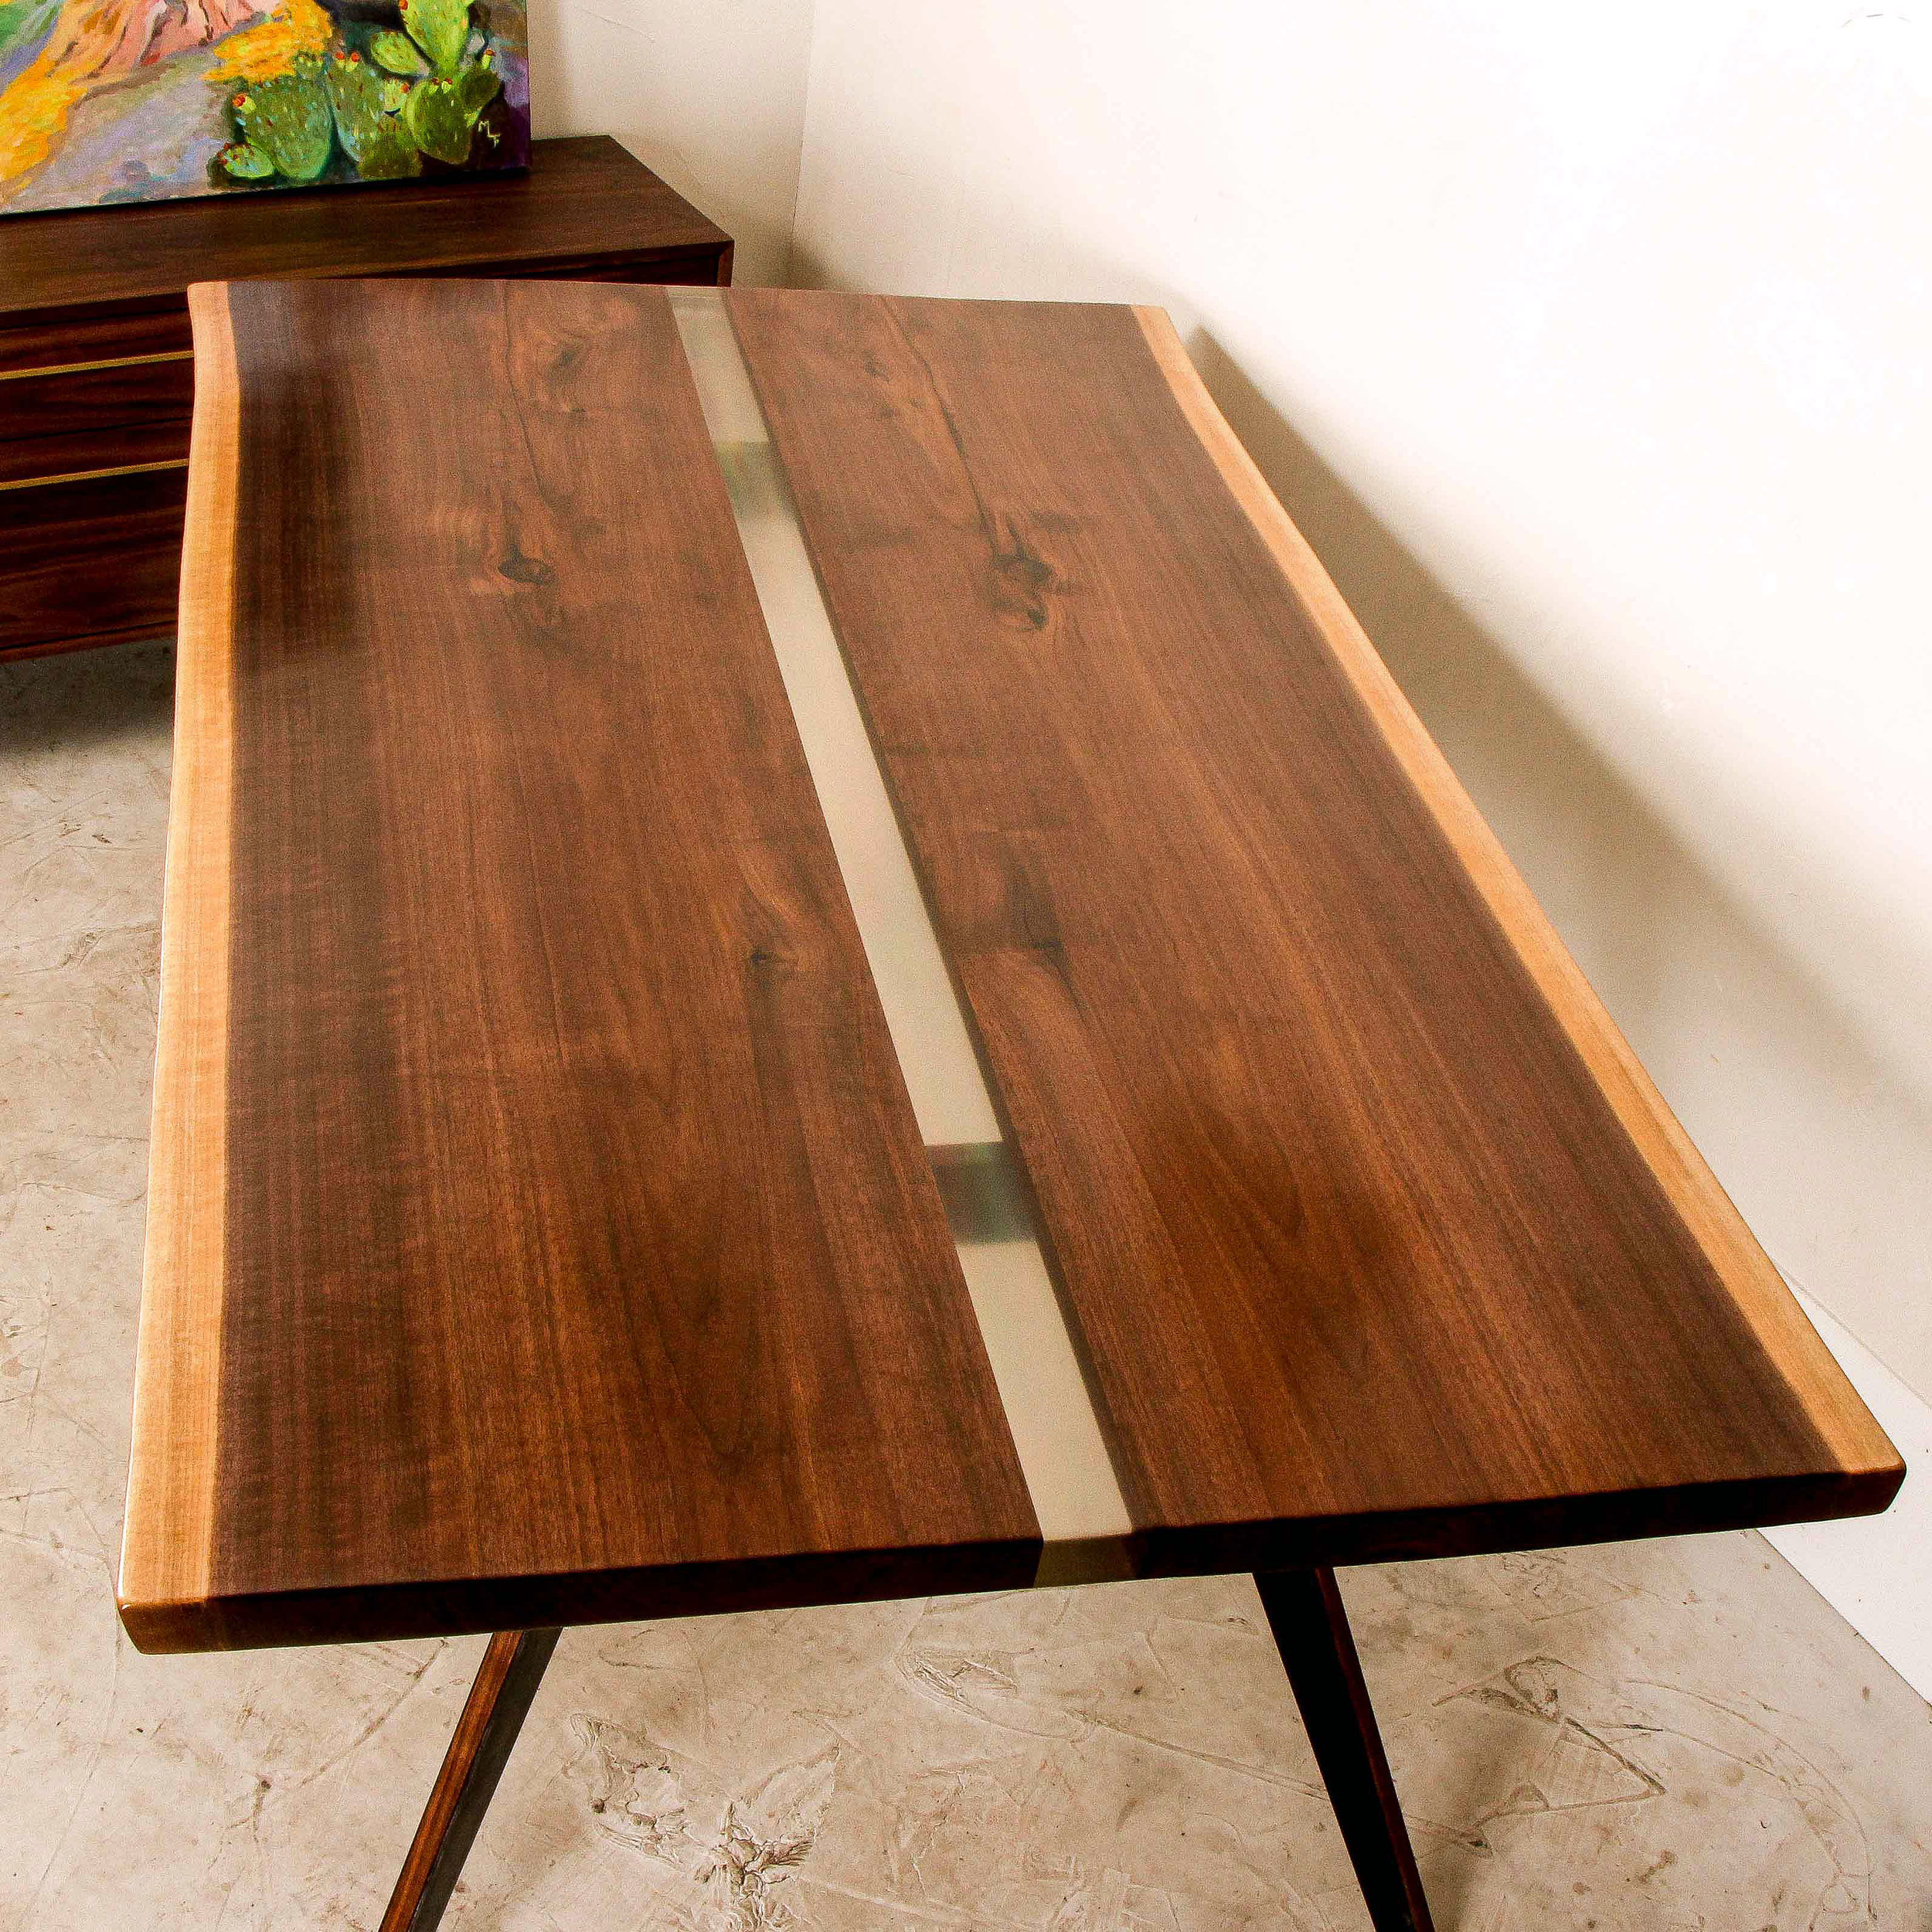 Arrow Walnut Live Edge Slab Dining Table by Mockingbird Made